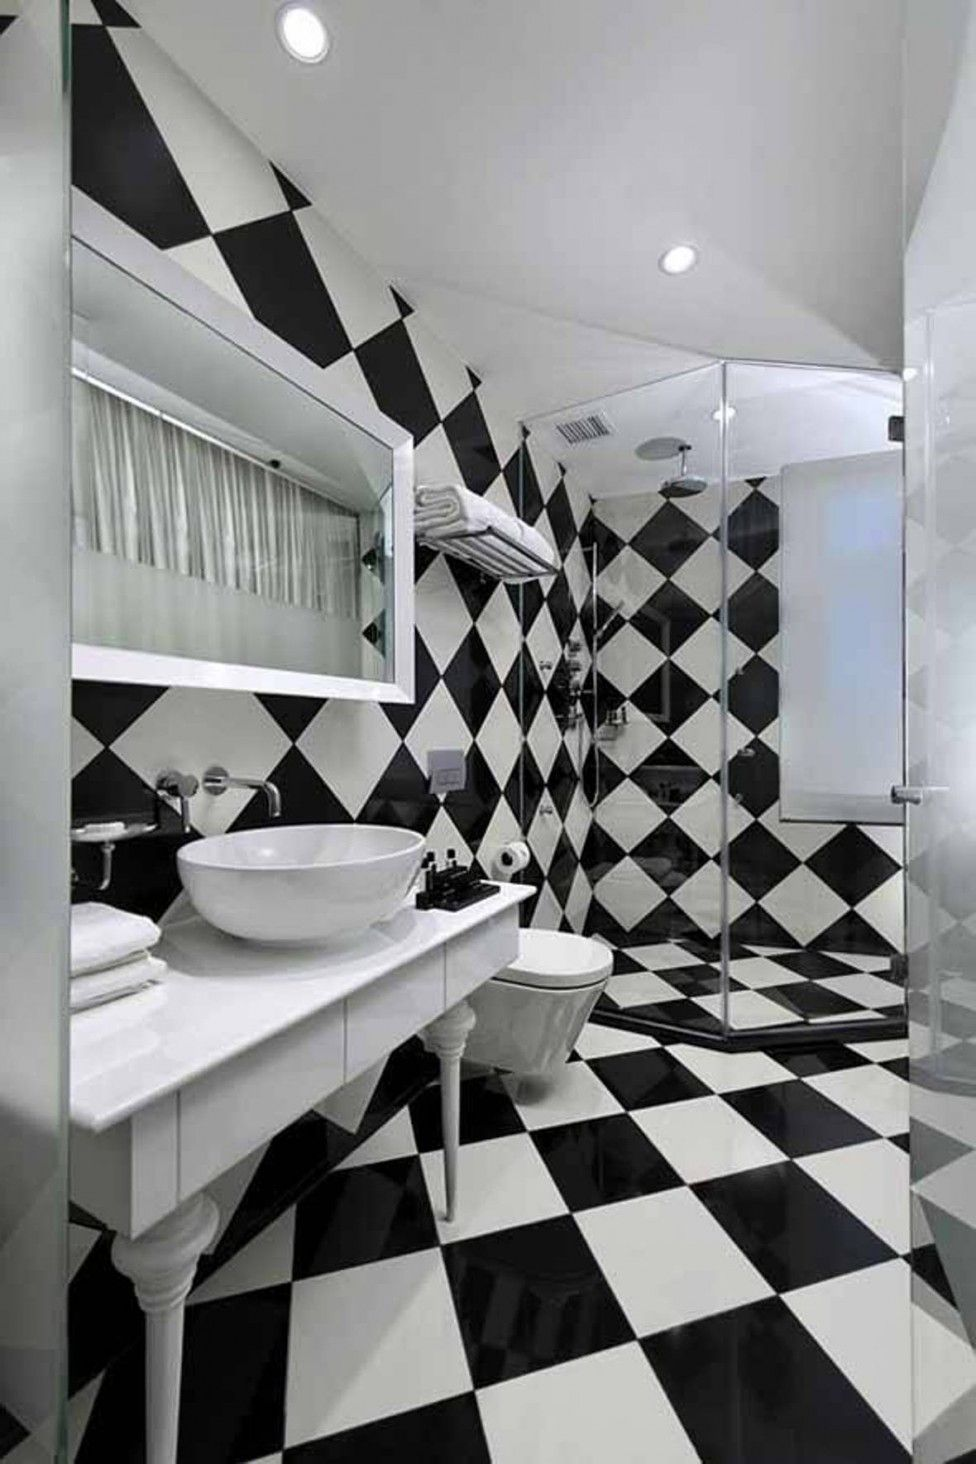 Bathroom ideas black and white - Appealing Black And White Bathrooms Chess Black And White Bathroom Decorating Black And White Black And